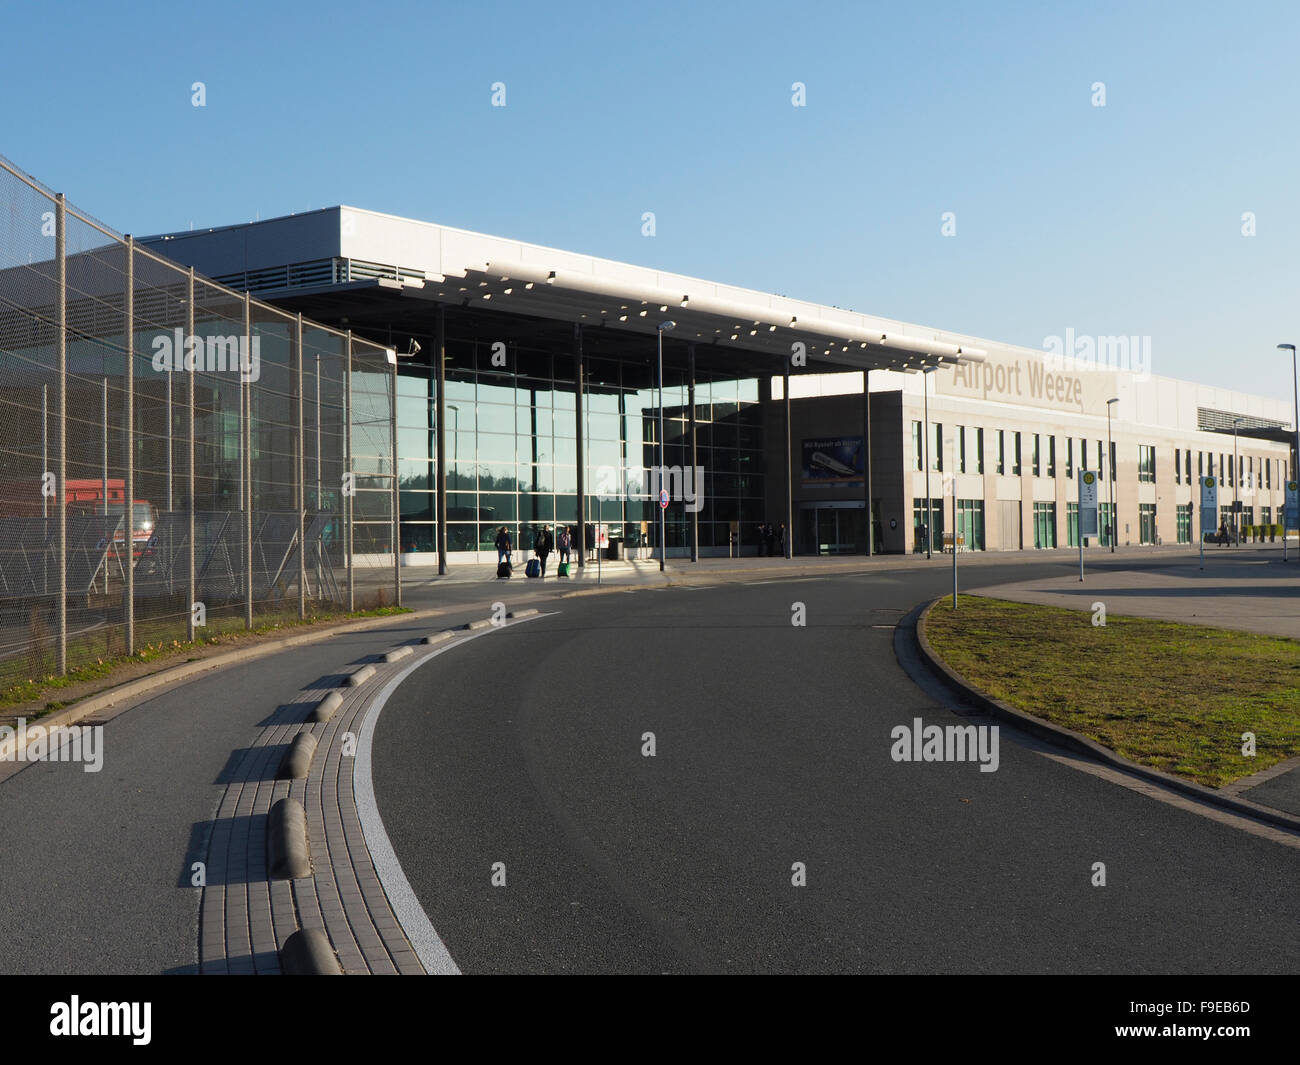 Weeze Niederrhein airport terminal exterior with a few travelers people NRN - Stock Image